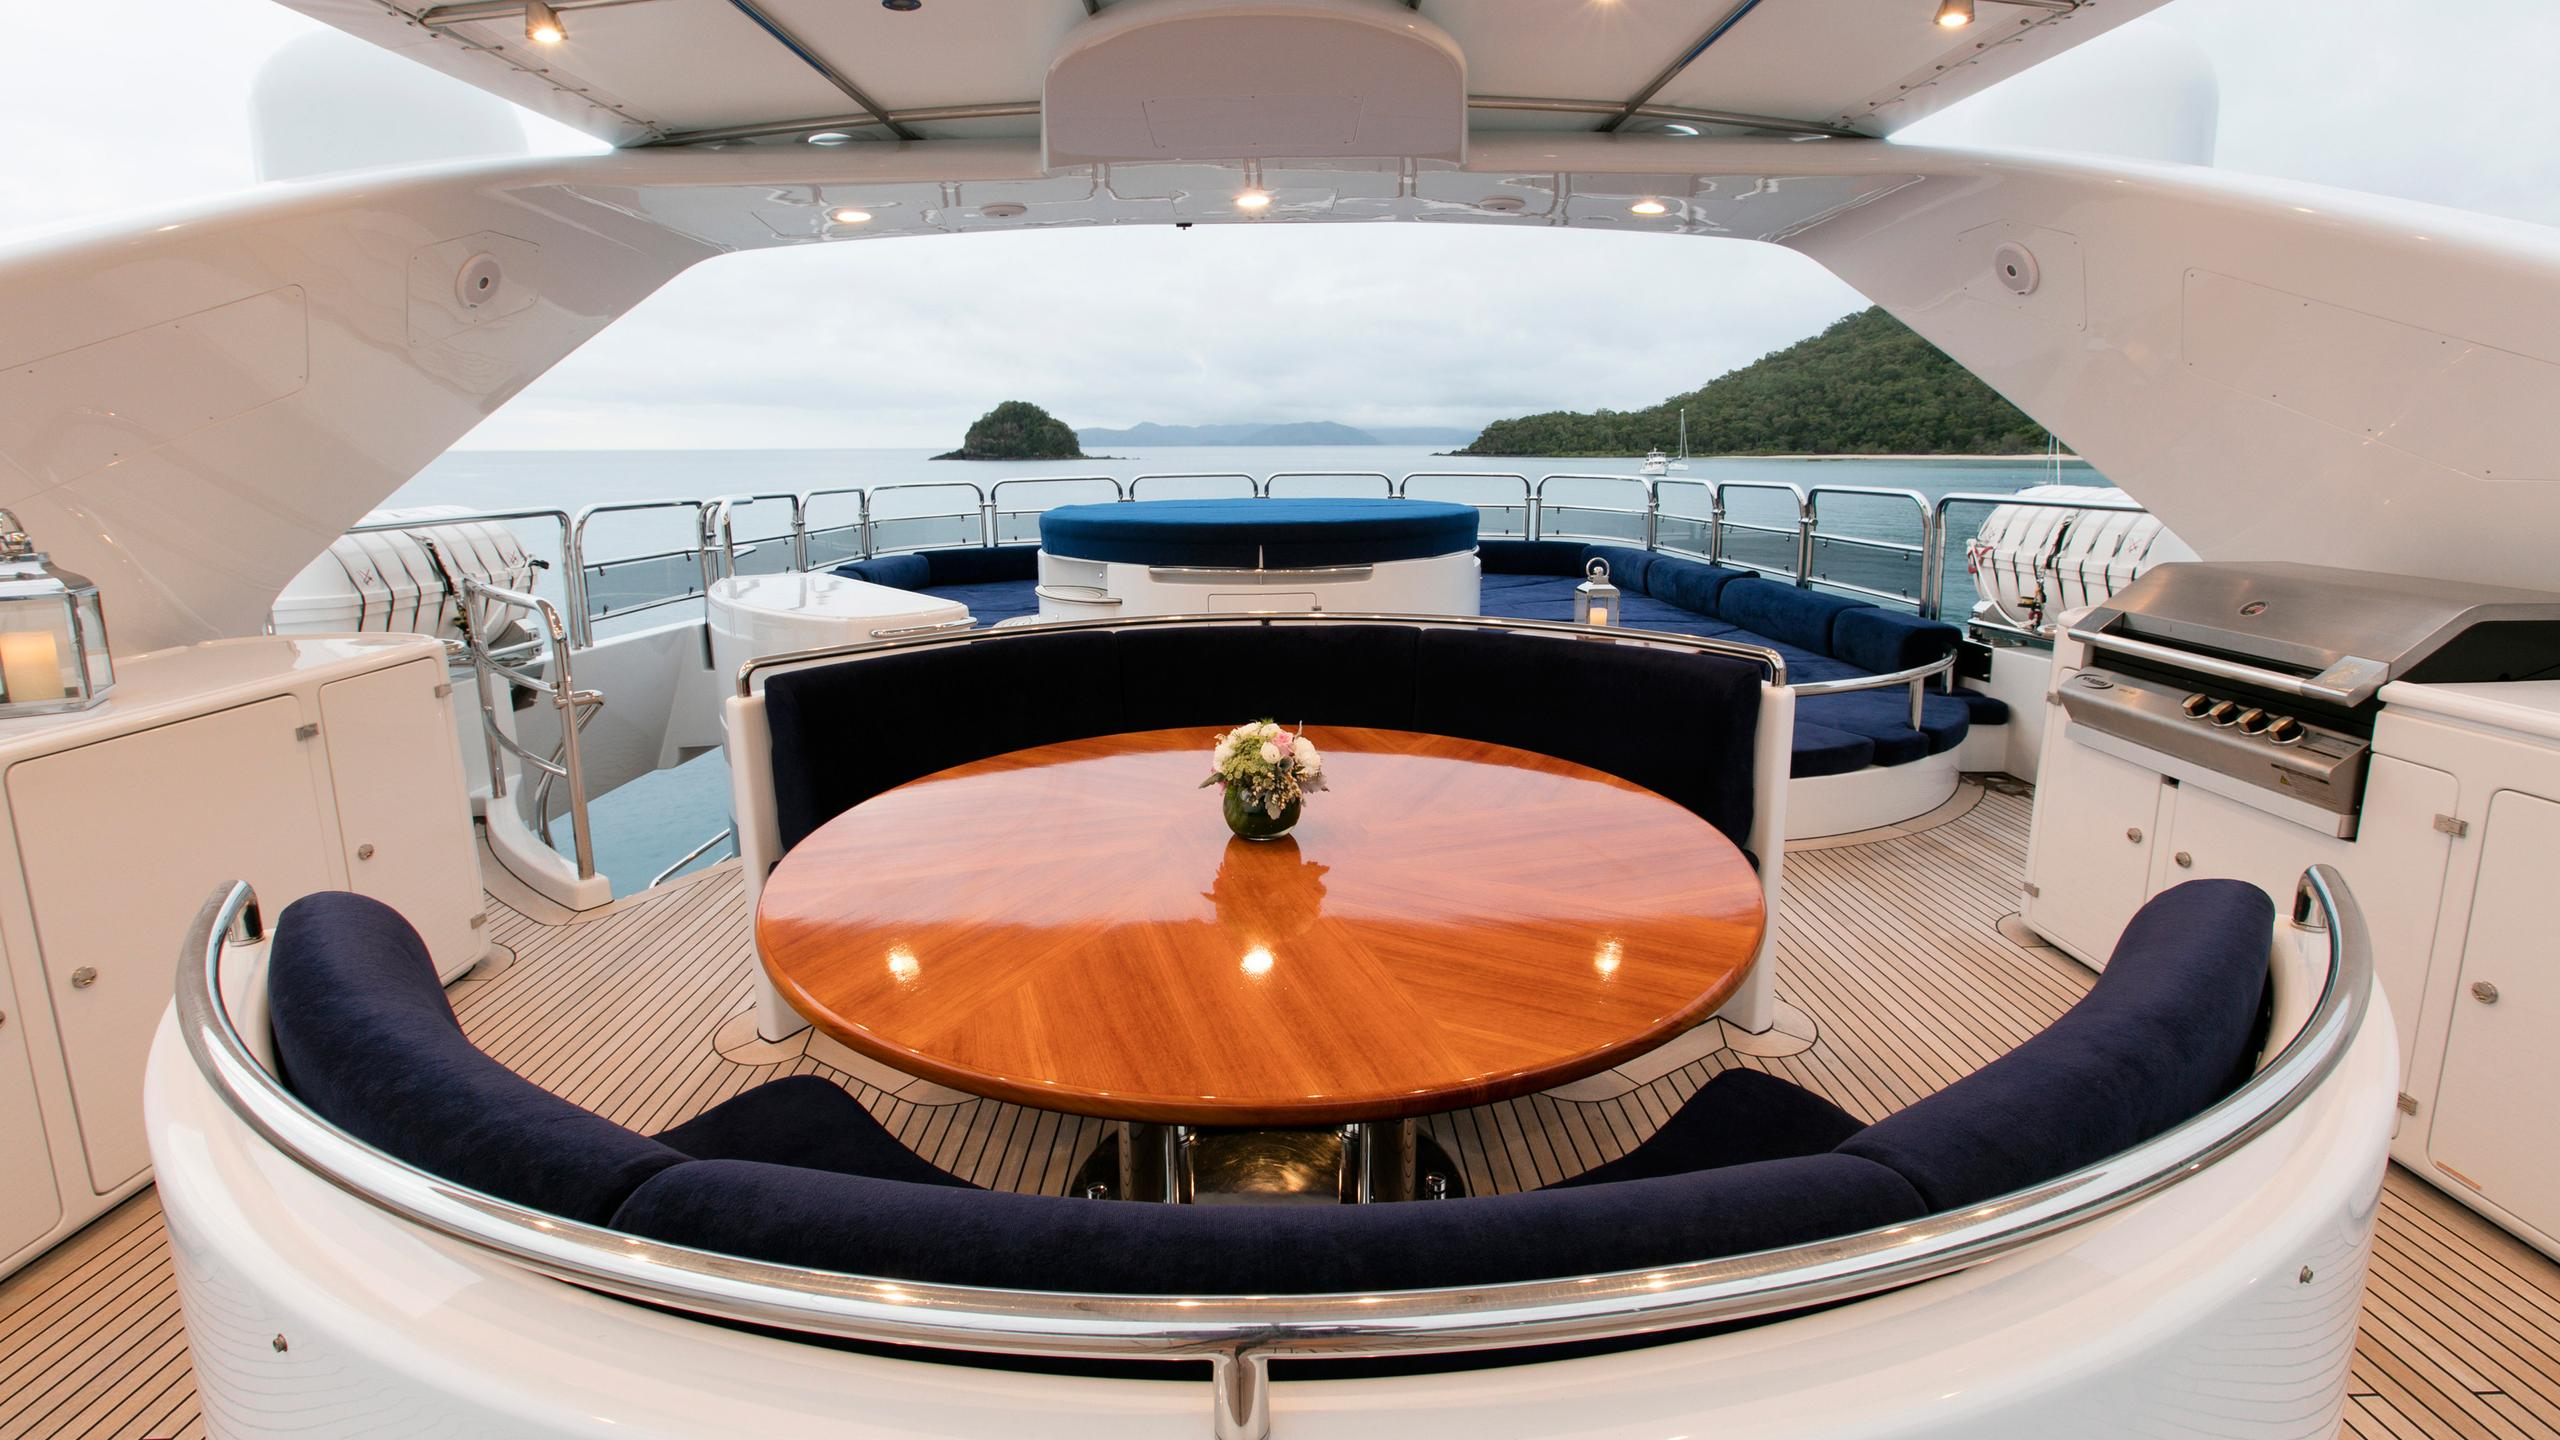 sovereign-motor-yacht-benetti-2002-44m-barbecue-deck